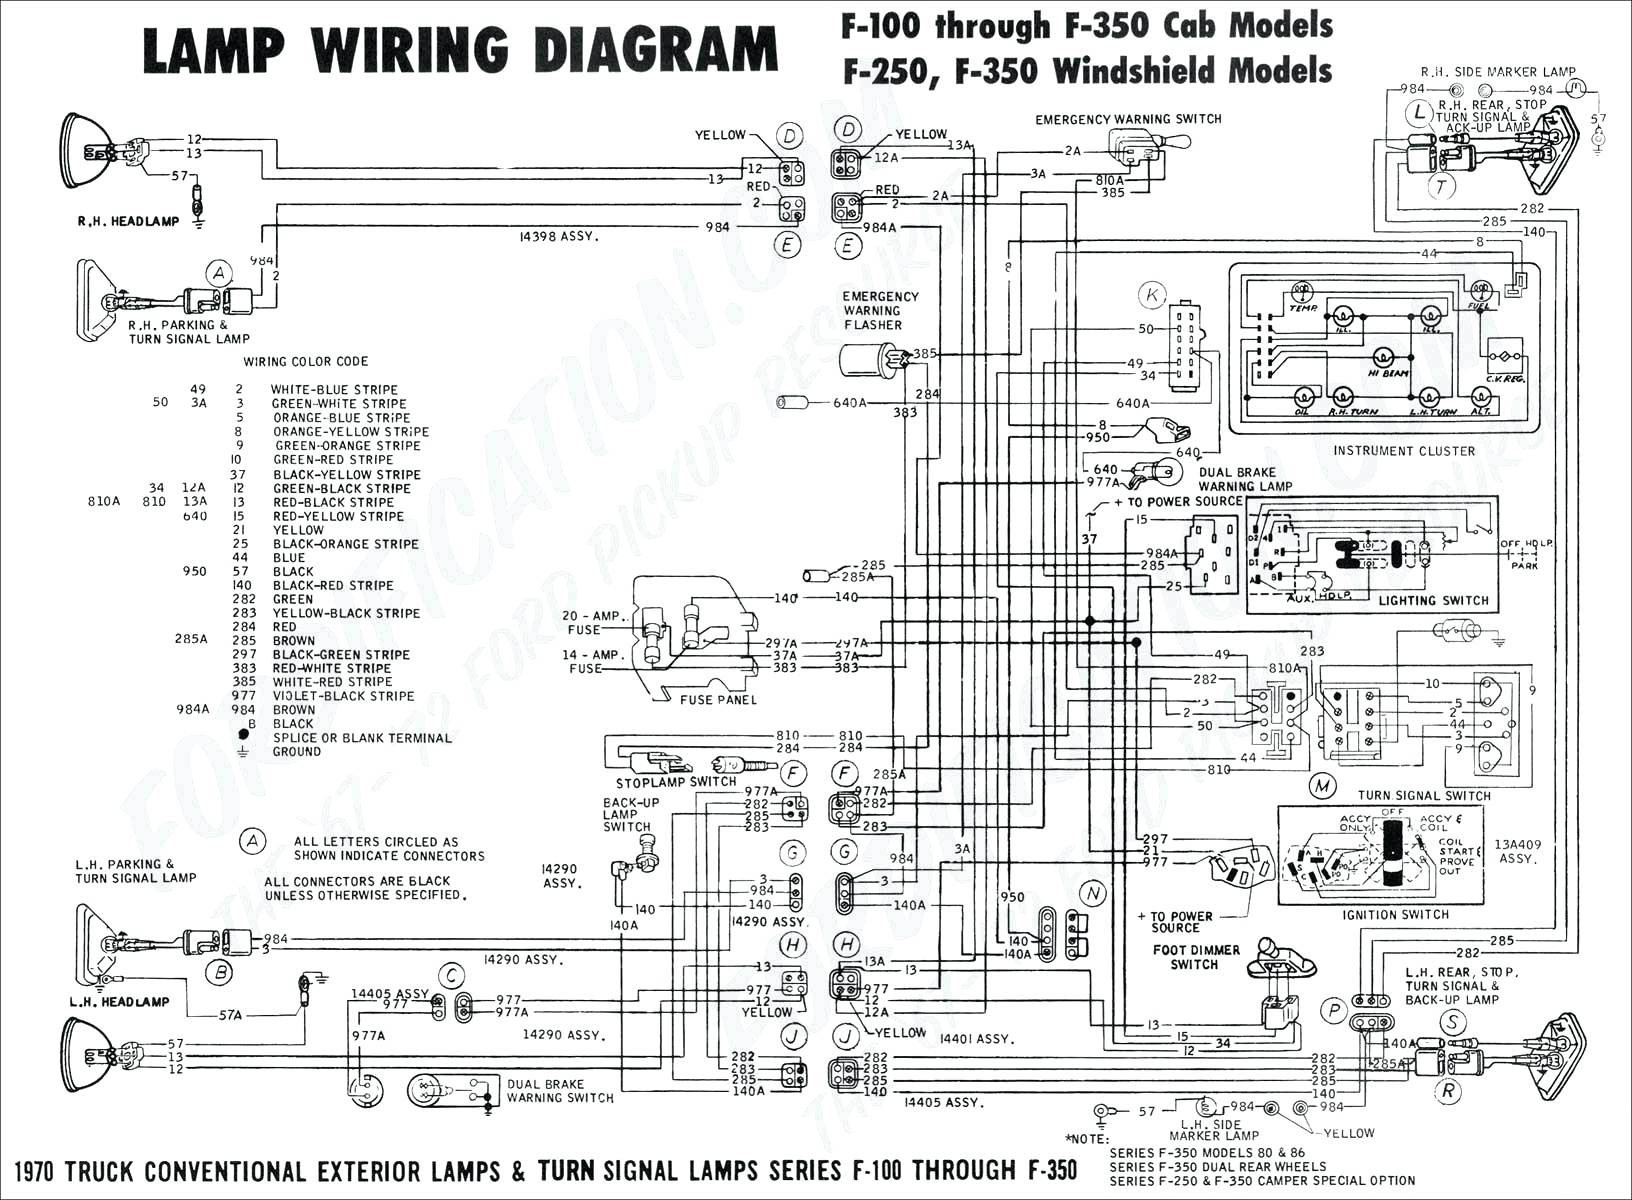 Featherlite Trailer Wiring Diagram Inspirational Horse Trailer - Featherlite Horse Trailer Wiring Diagram